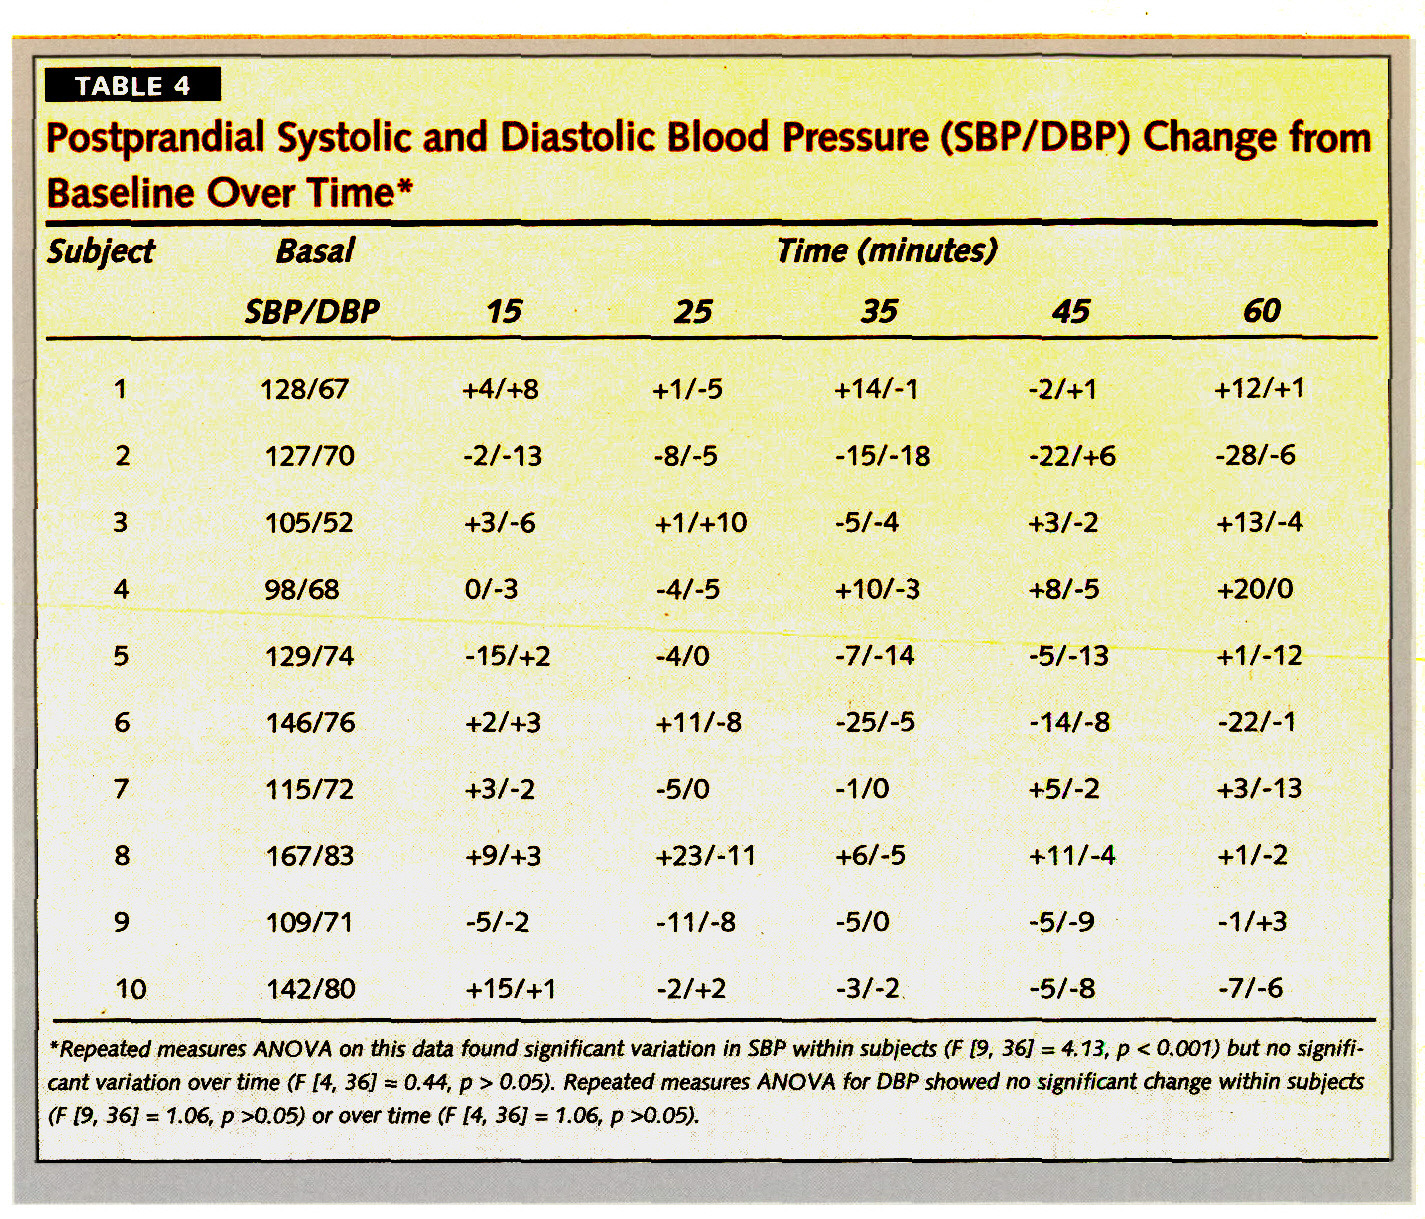 TABLE 4Postprandial Systolic and Diastolic Blood Pressure (SBP/DBP) Change from Baseline Over Time*